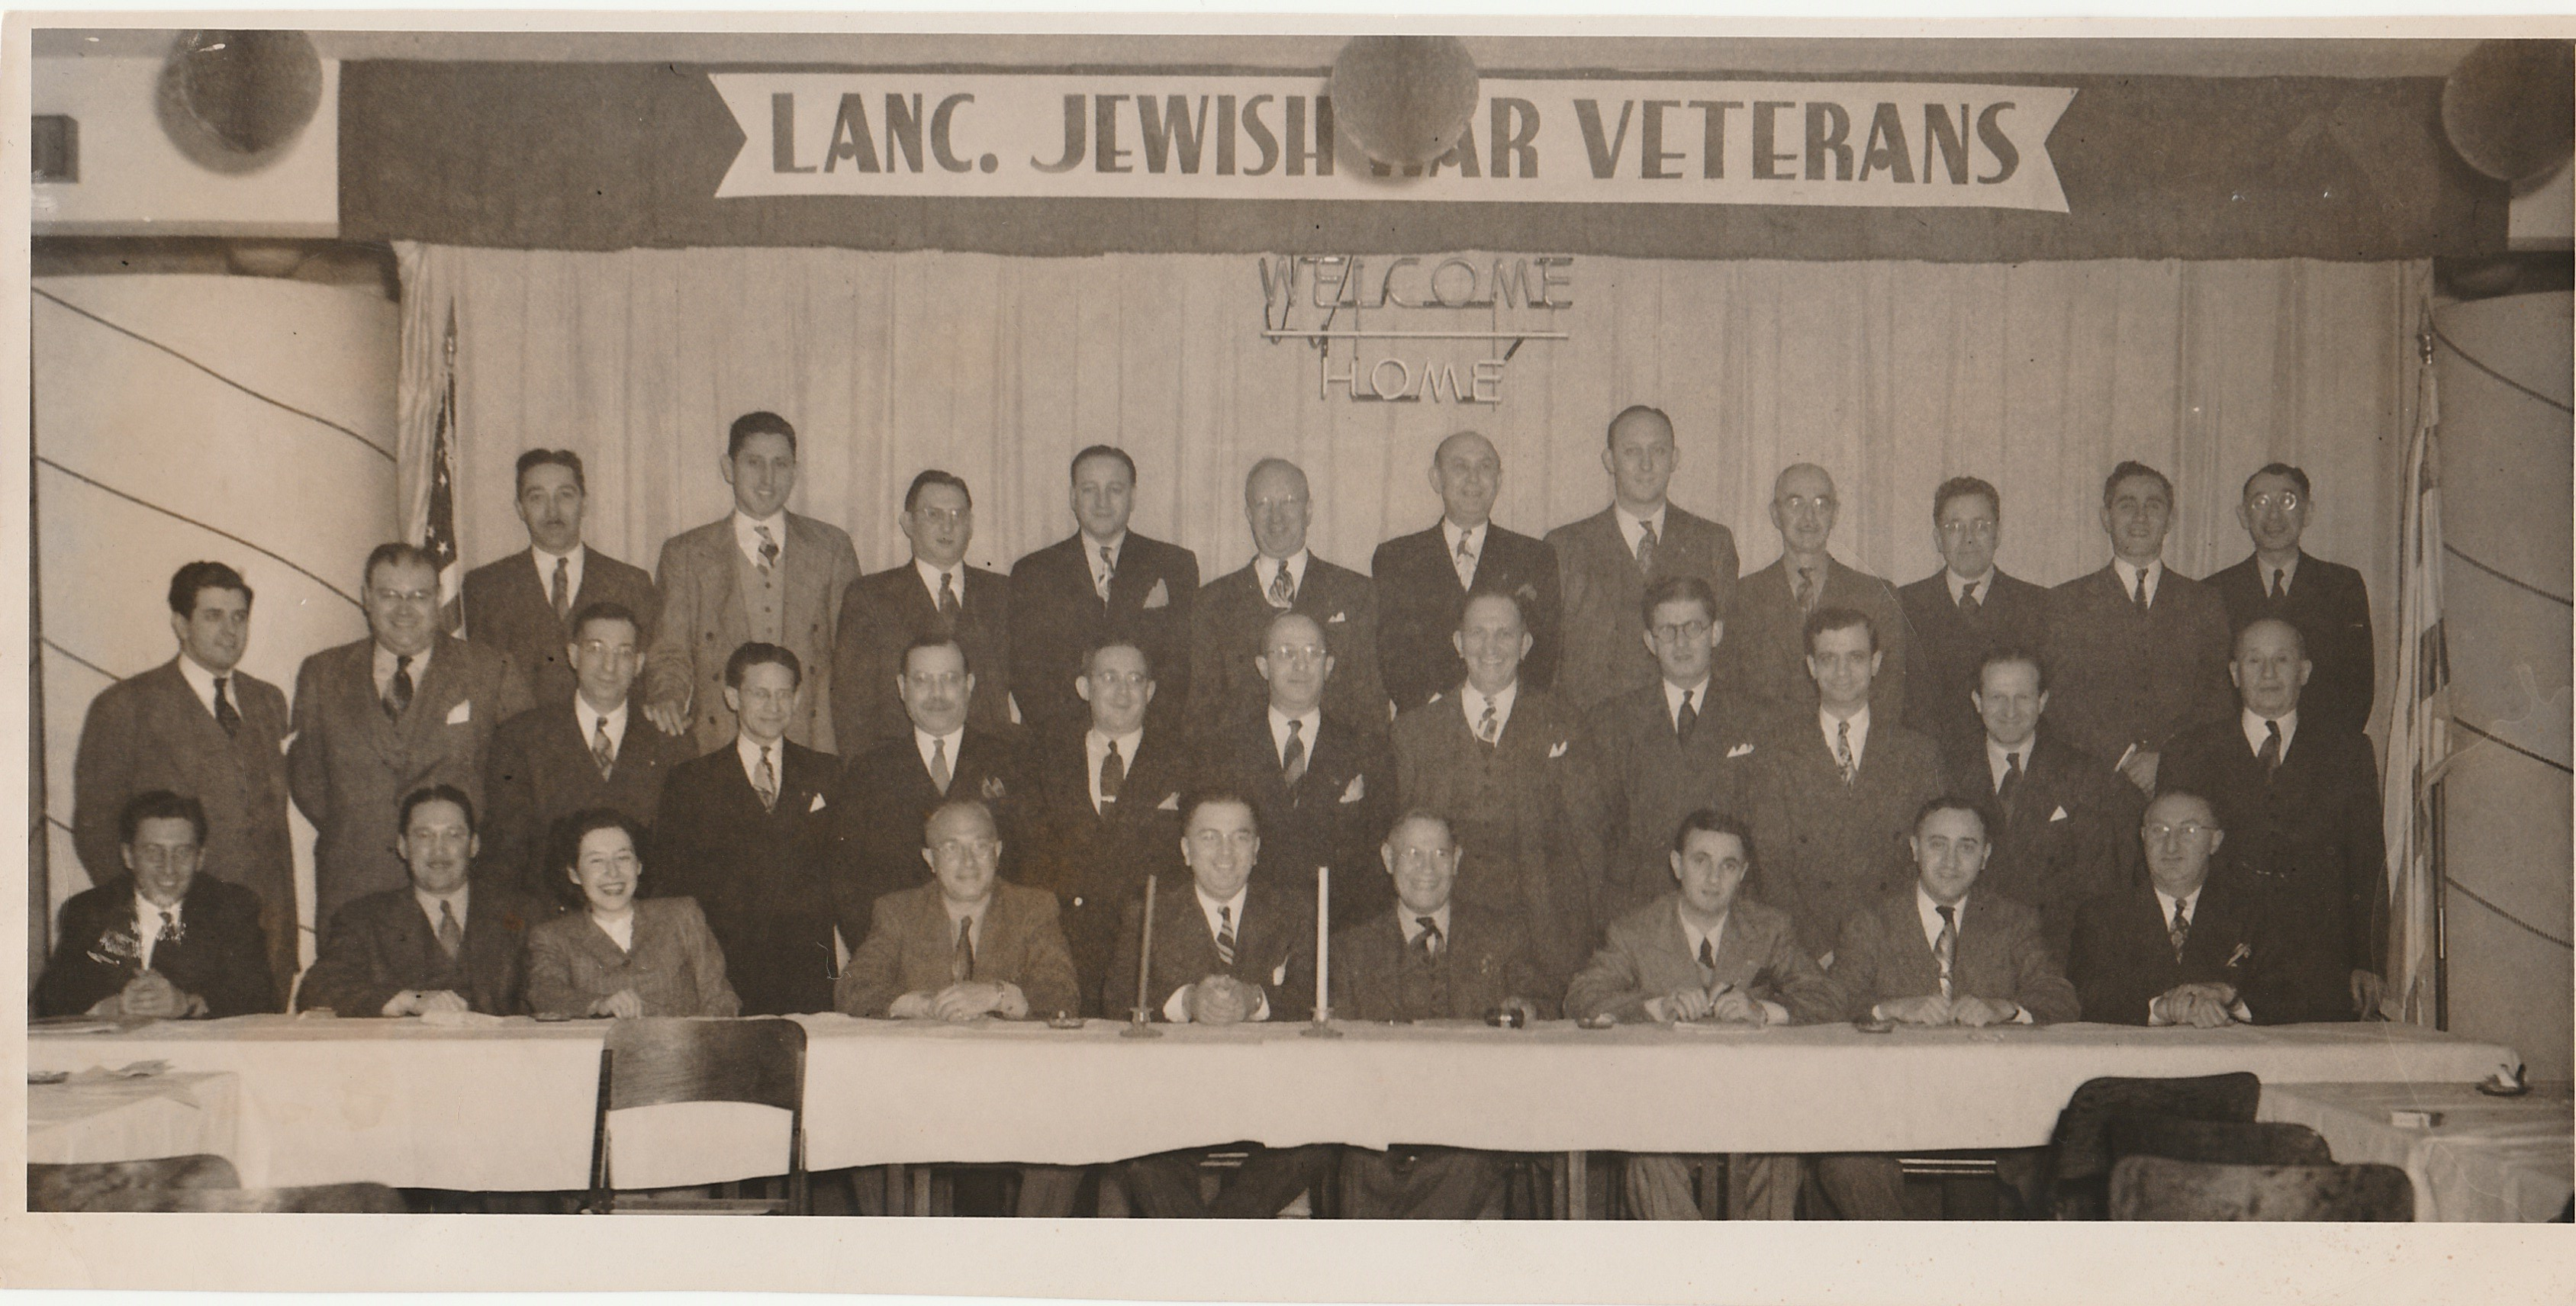 1946 Lancaster Jewish War Veterans Feb 3